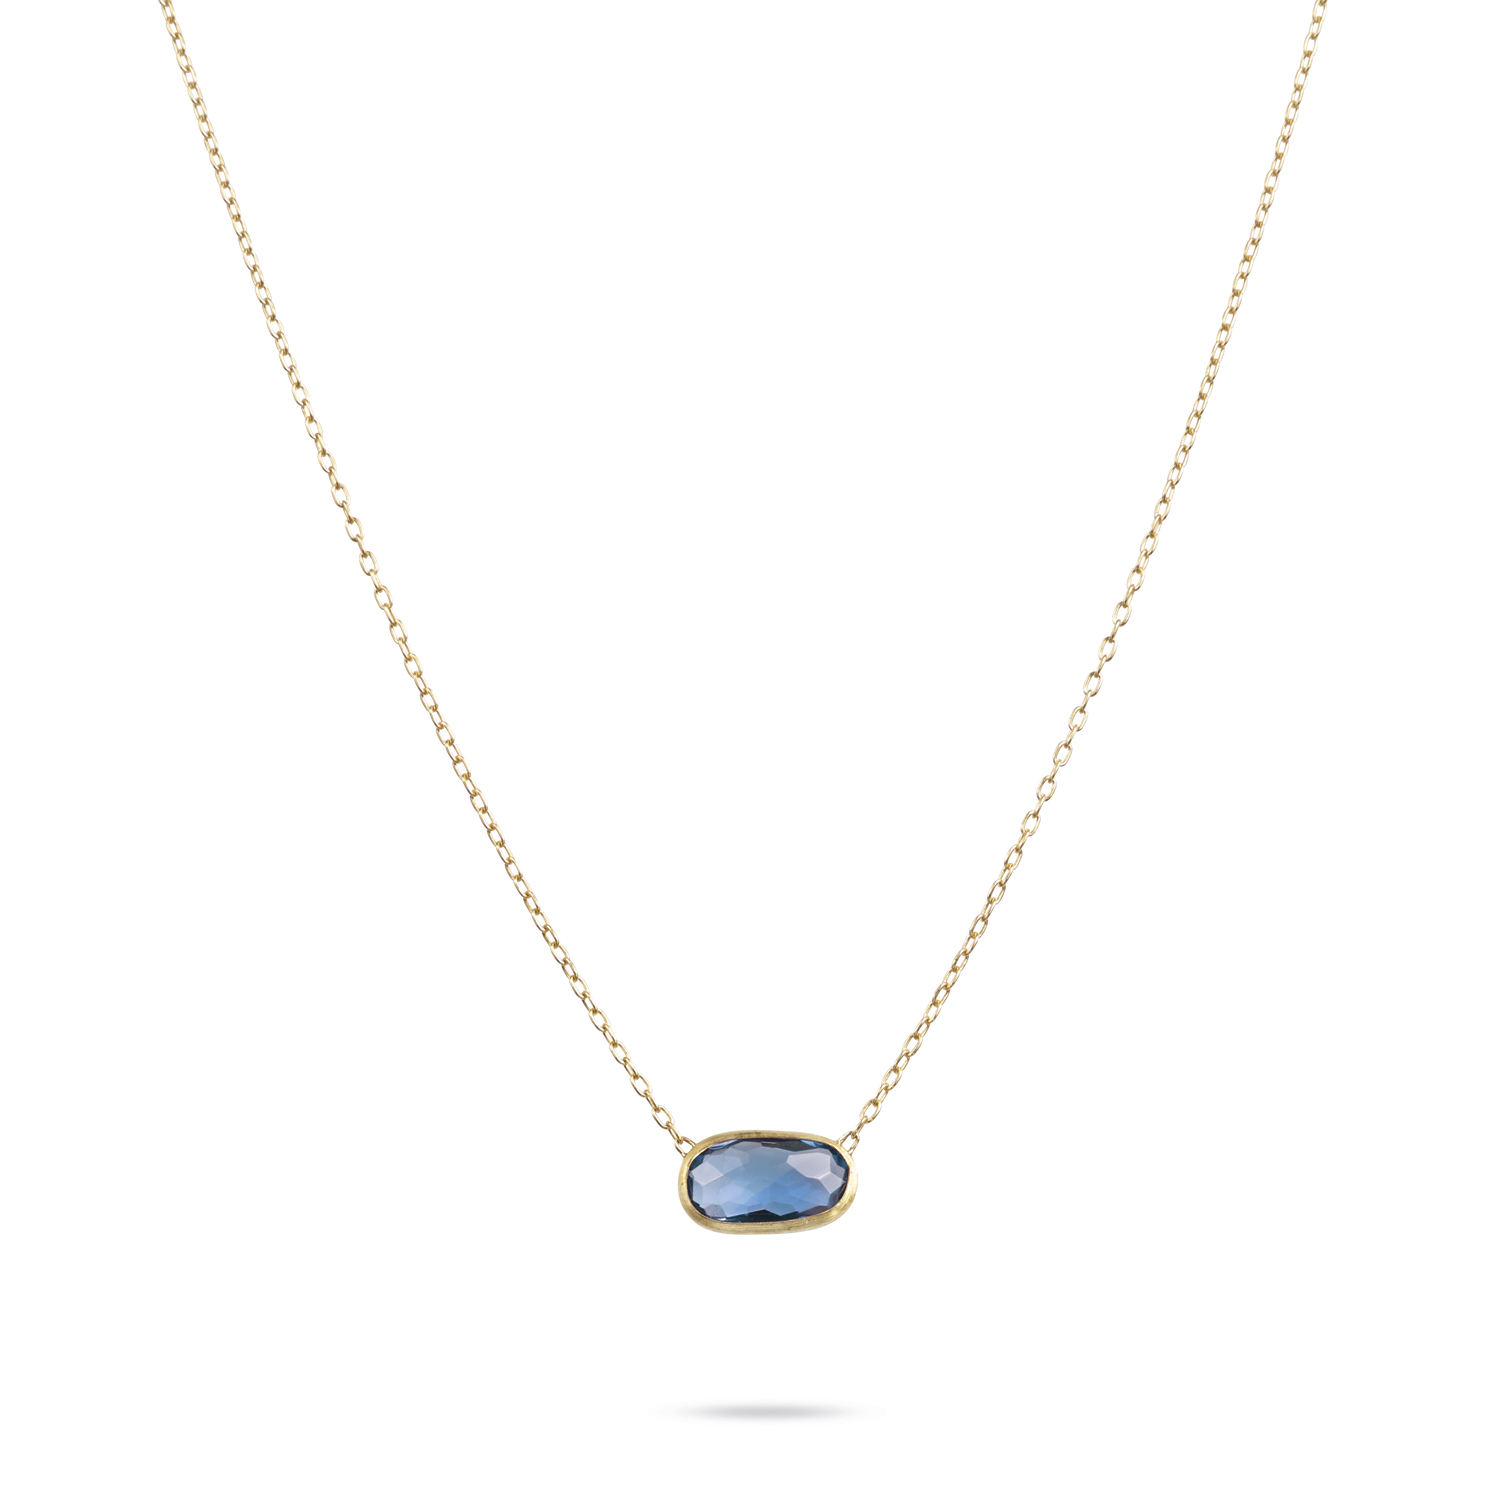 item white gold drop blue necklace tear in jewelry topaz elongated pendant setting jewelers kloiber